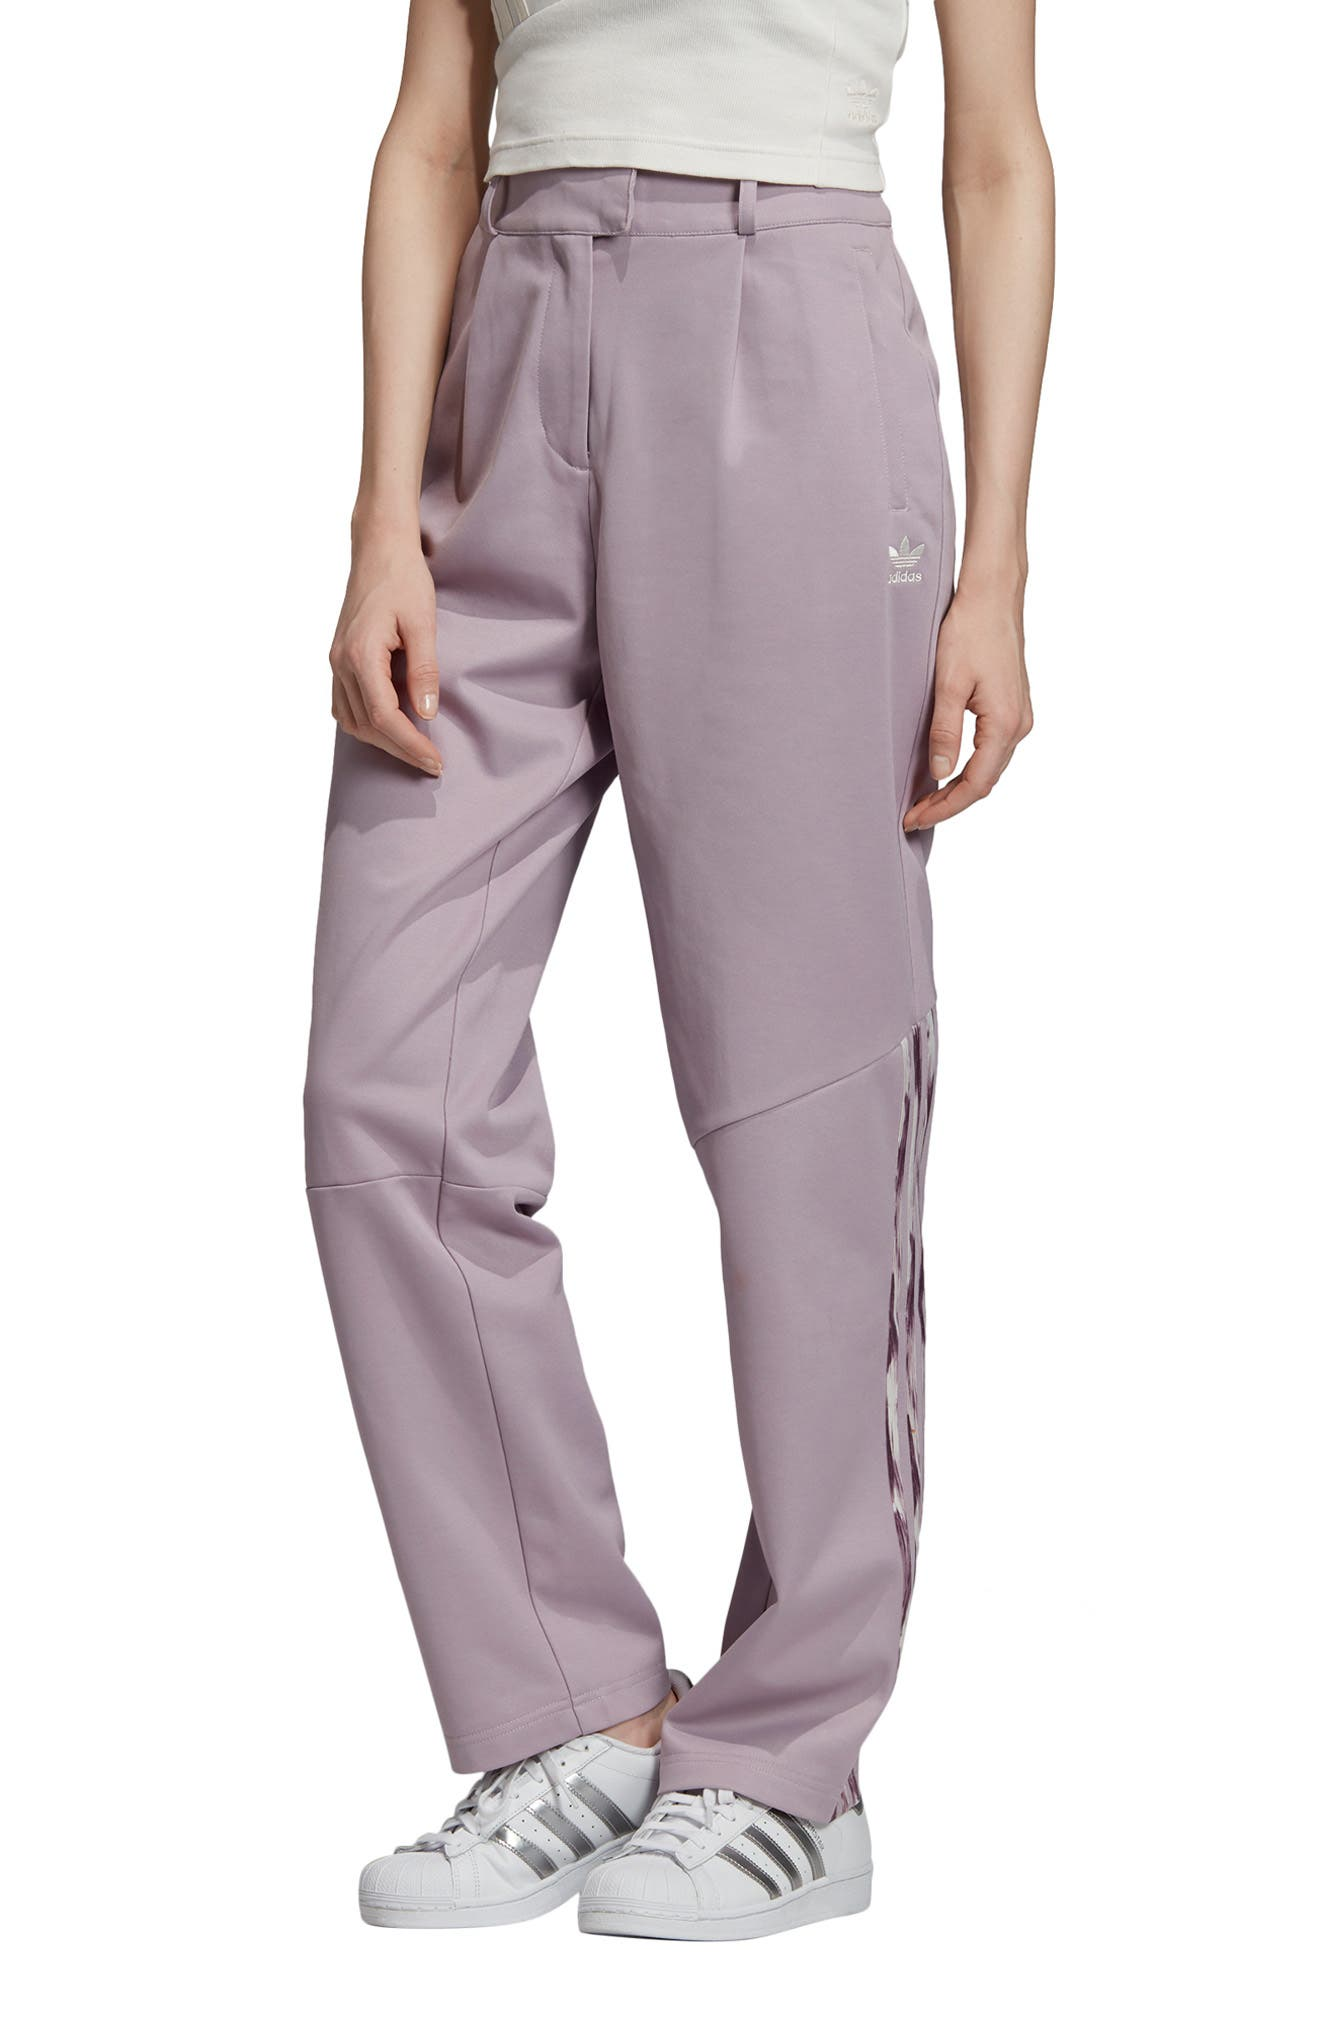 adidas Originals Daniëlle Cathari Recycled Polyester Track Pants Coupon